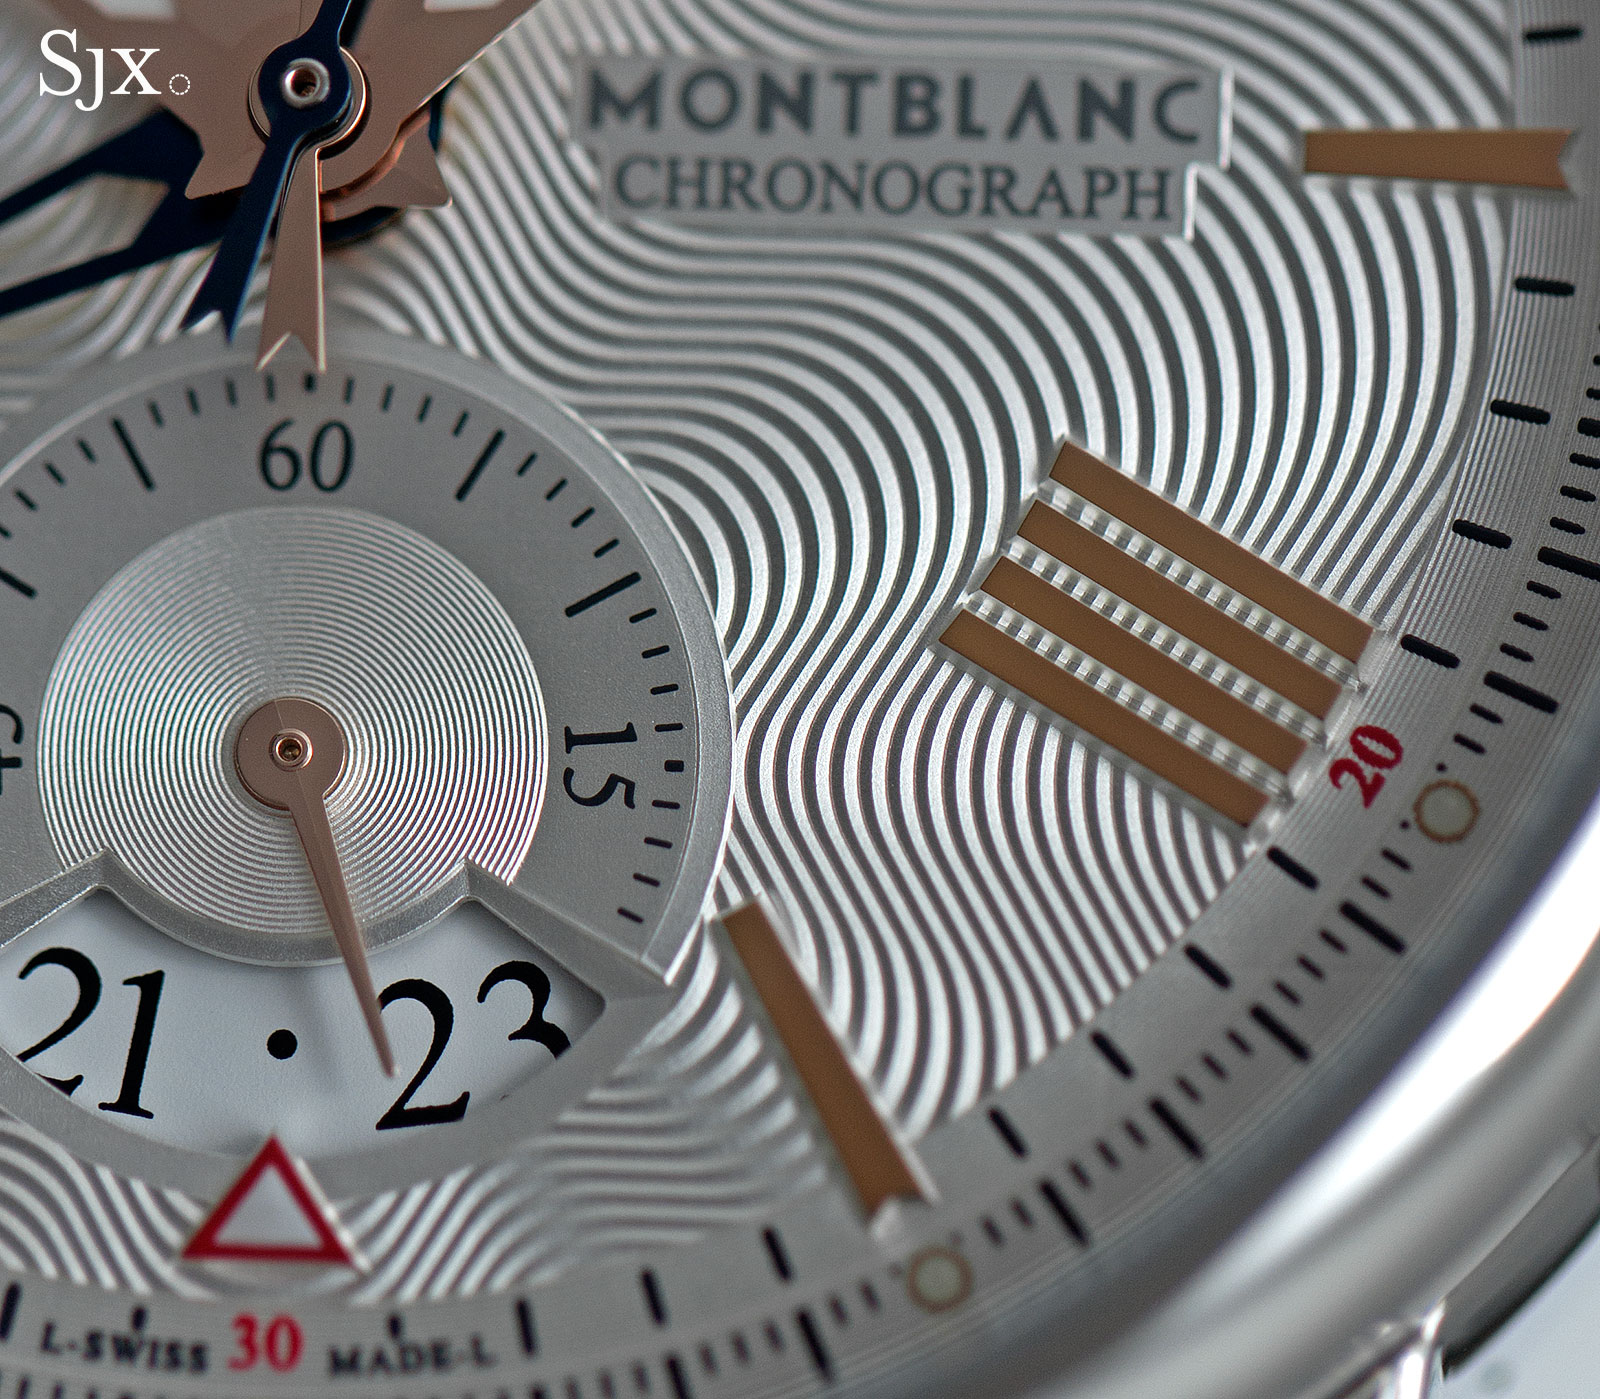 Montblanc 4810 TwinFly Chronograph 110 Years 2